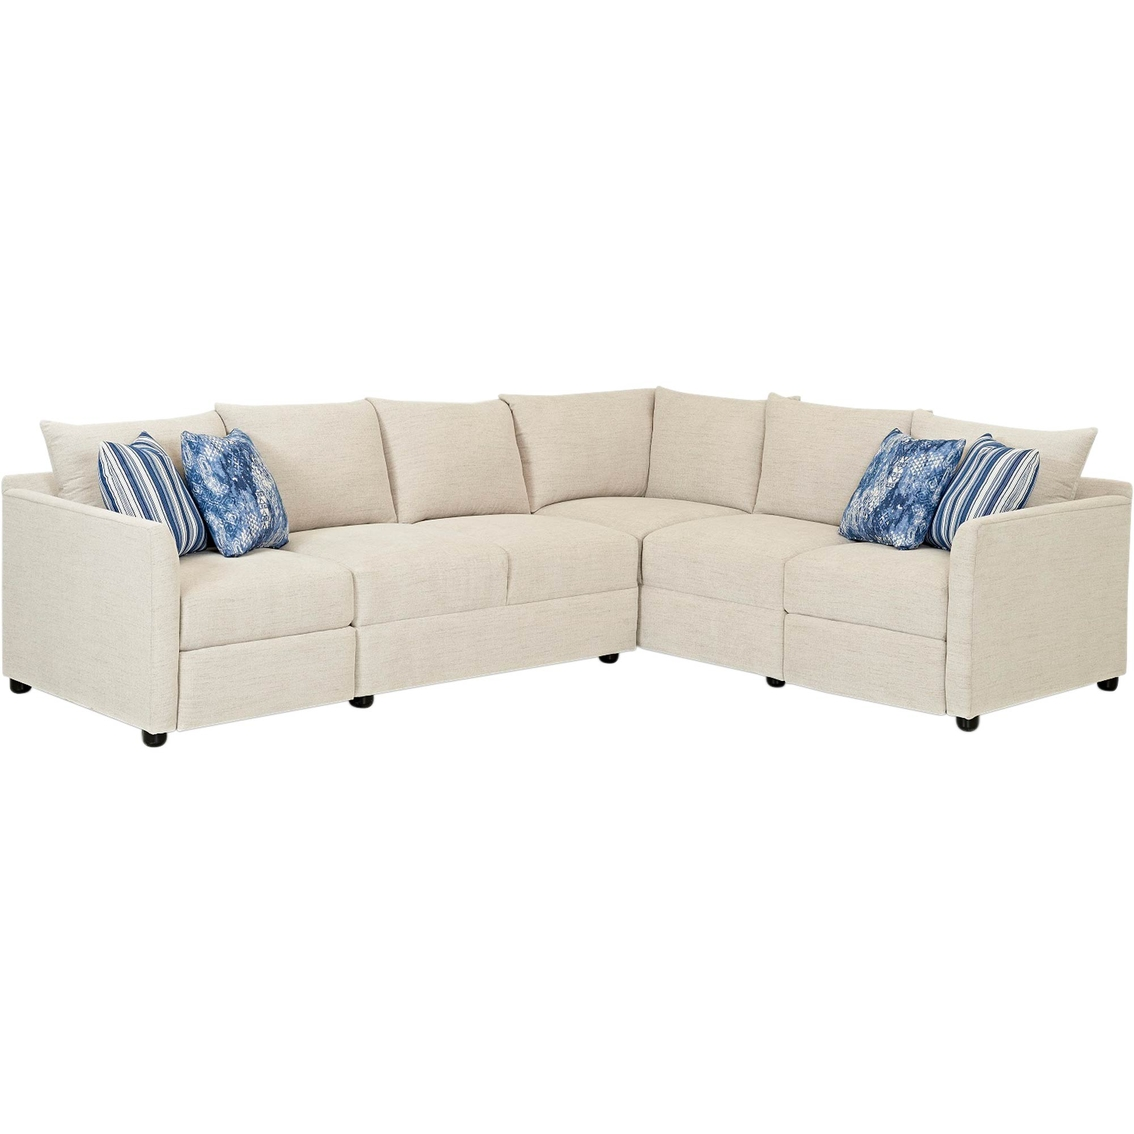 2 pc laf sectional sofa 3 seater dimensions in mm klaussner atlanta power reclining section